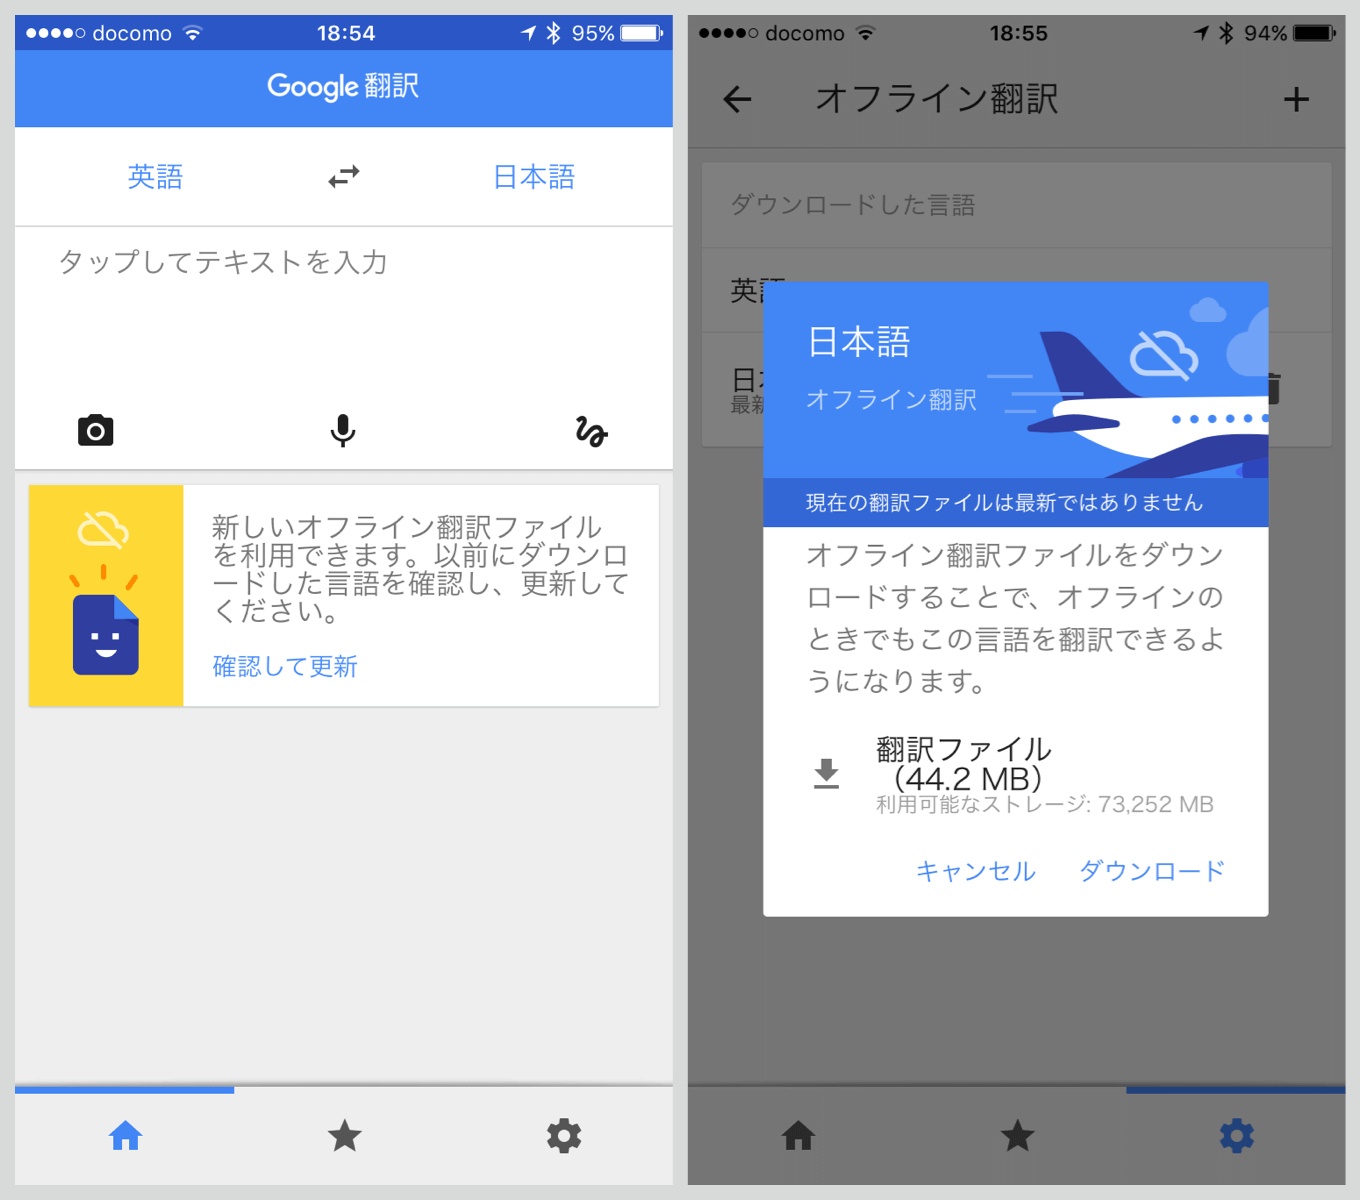 Google realtime translate 1